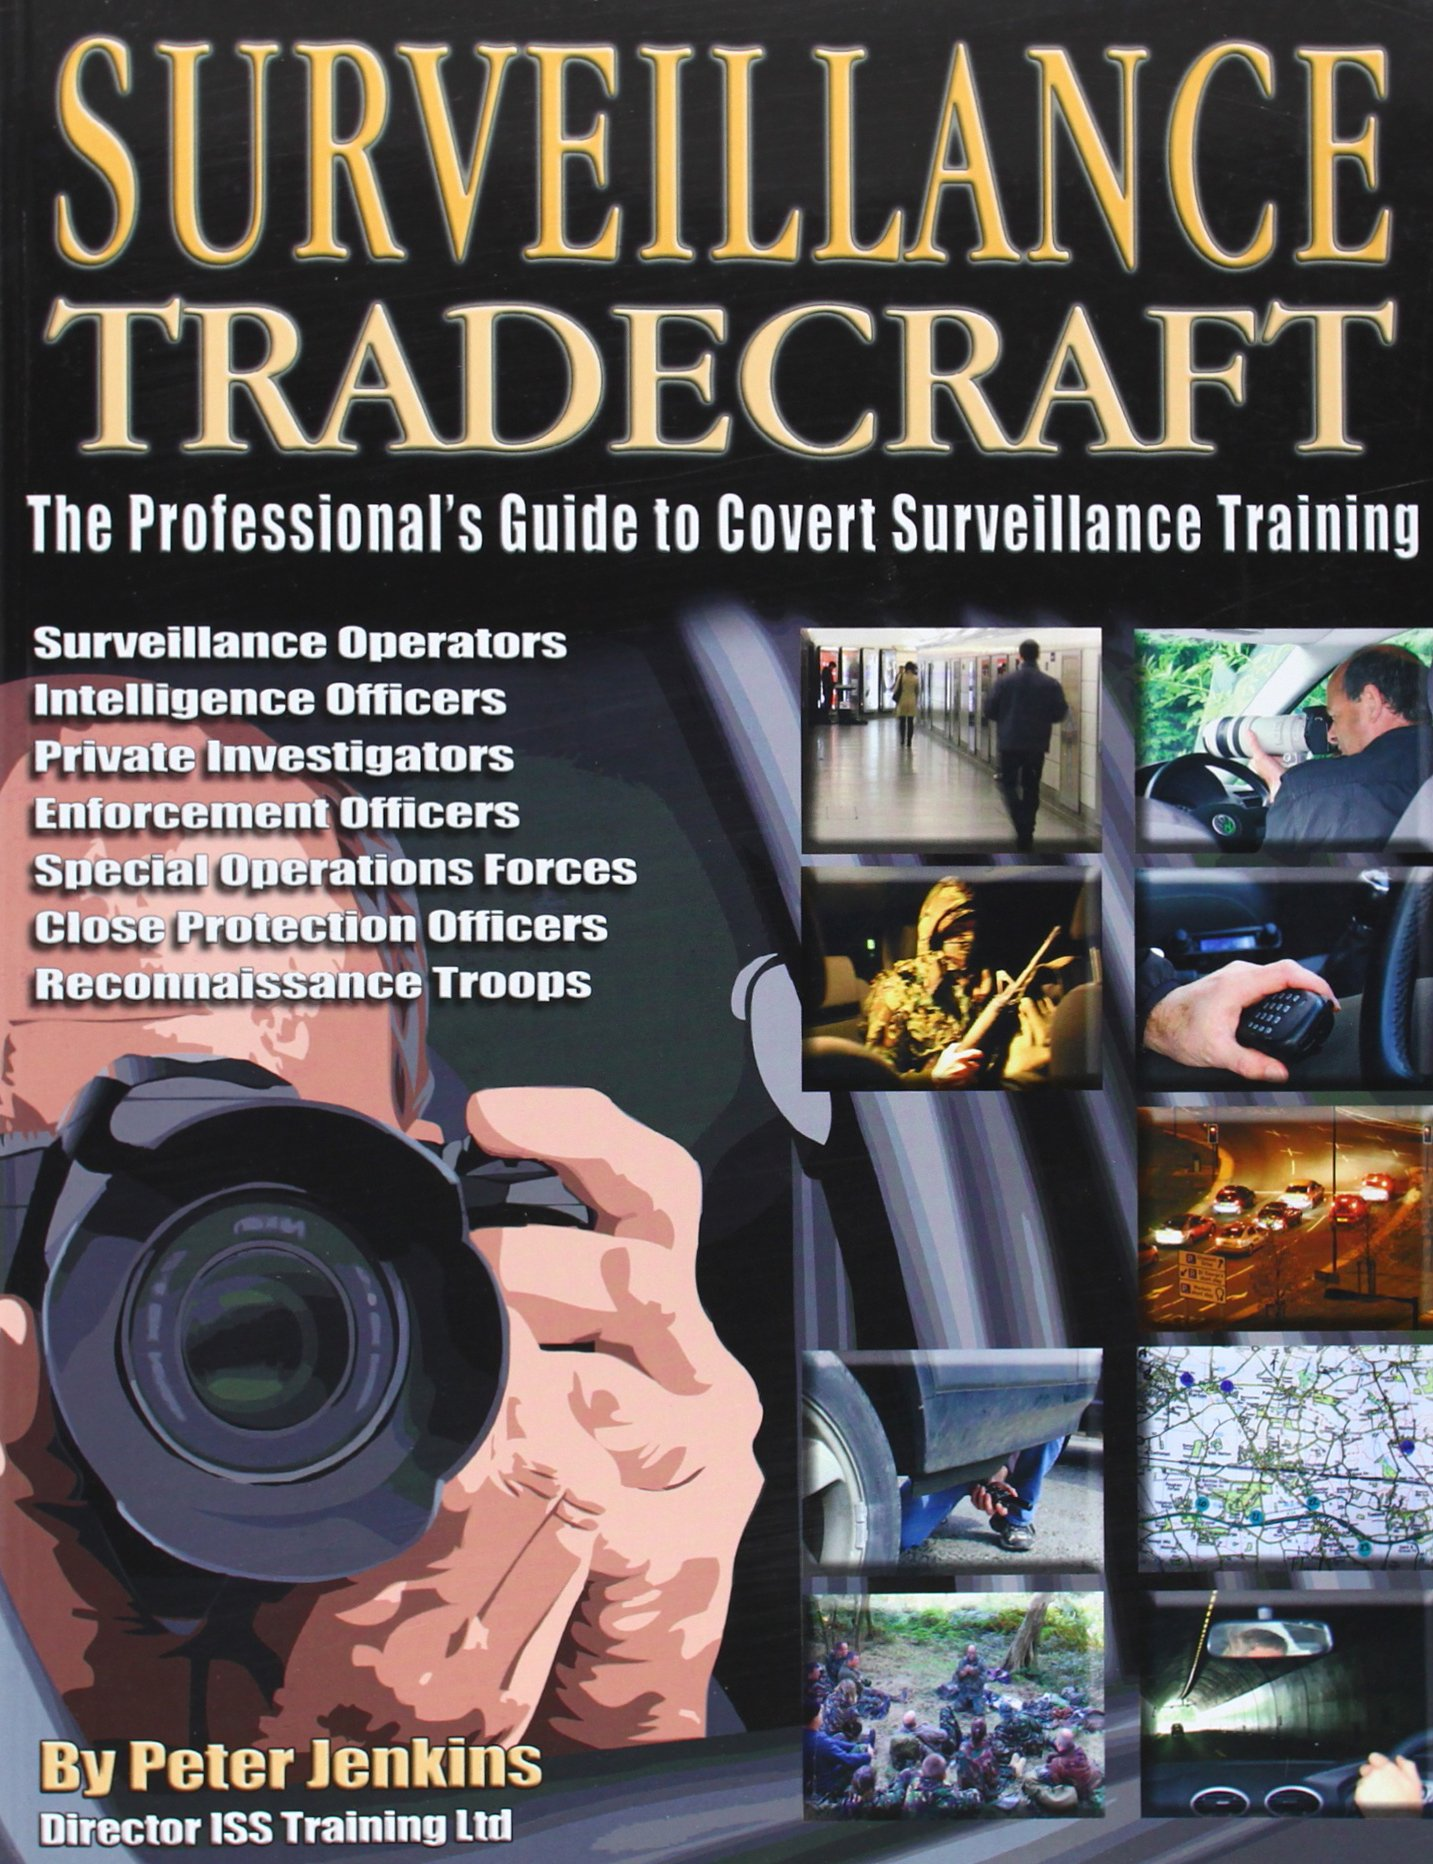 Surveillance Tradecraft The Professional's Guide to